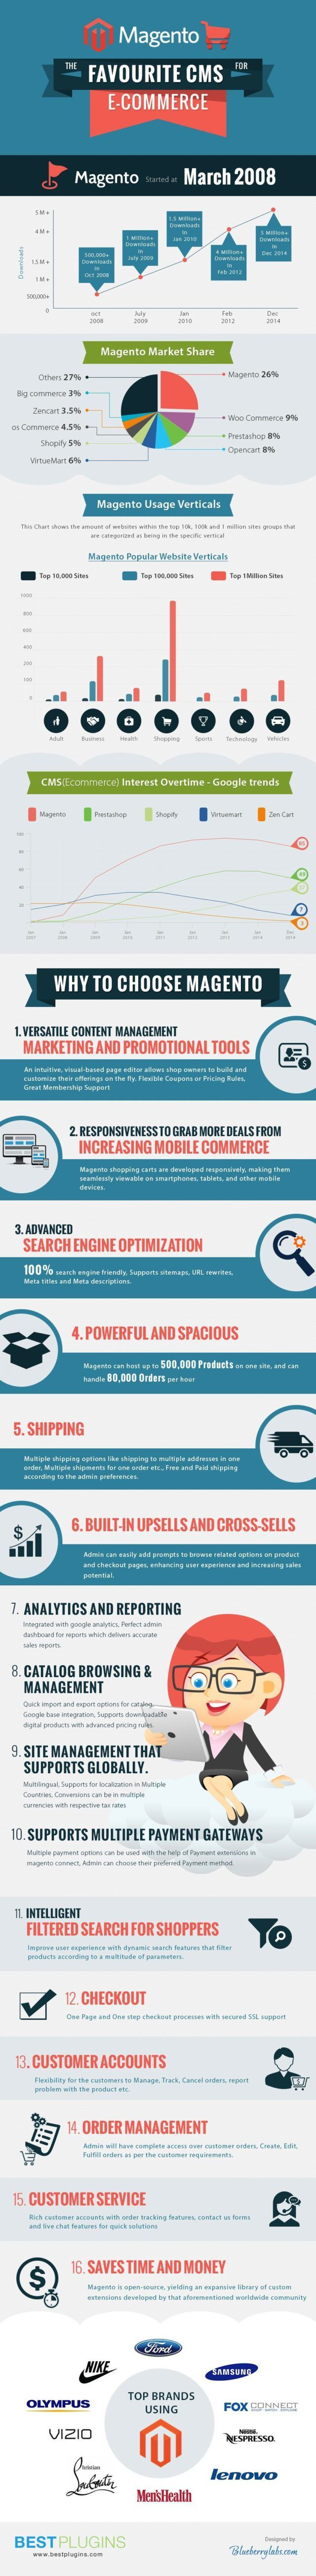 Magento - the Best Ecommerce CMS